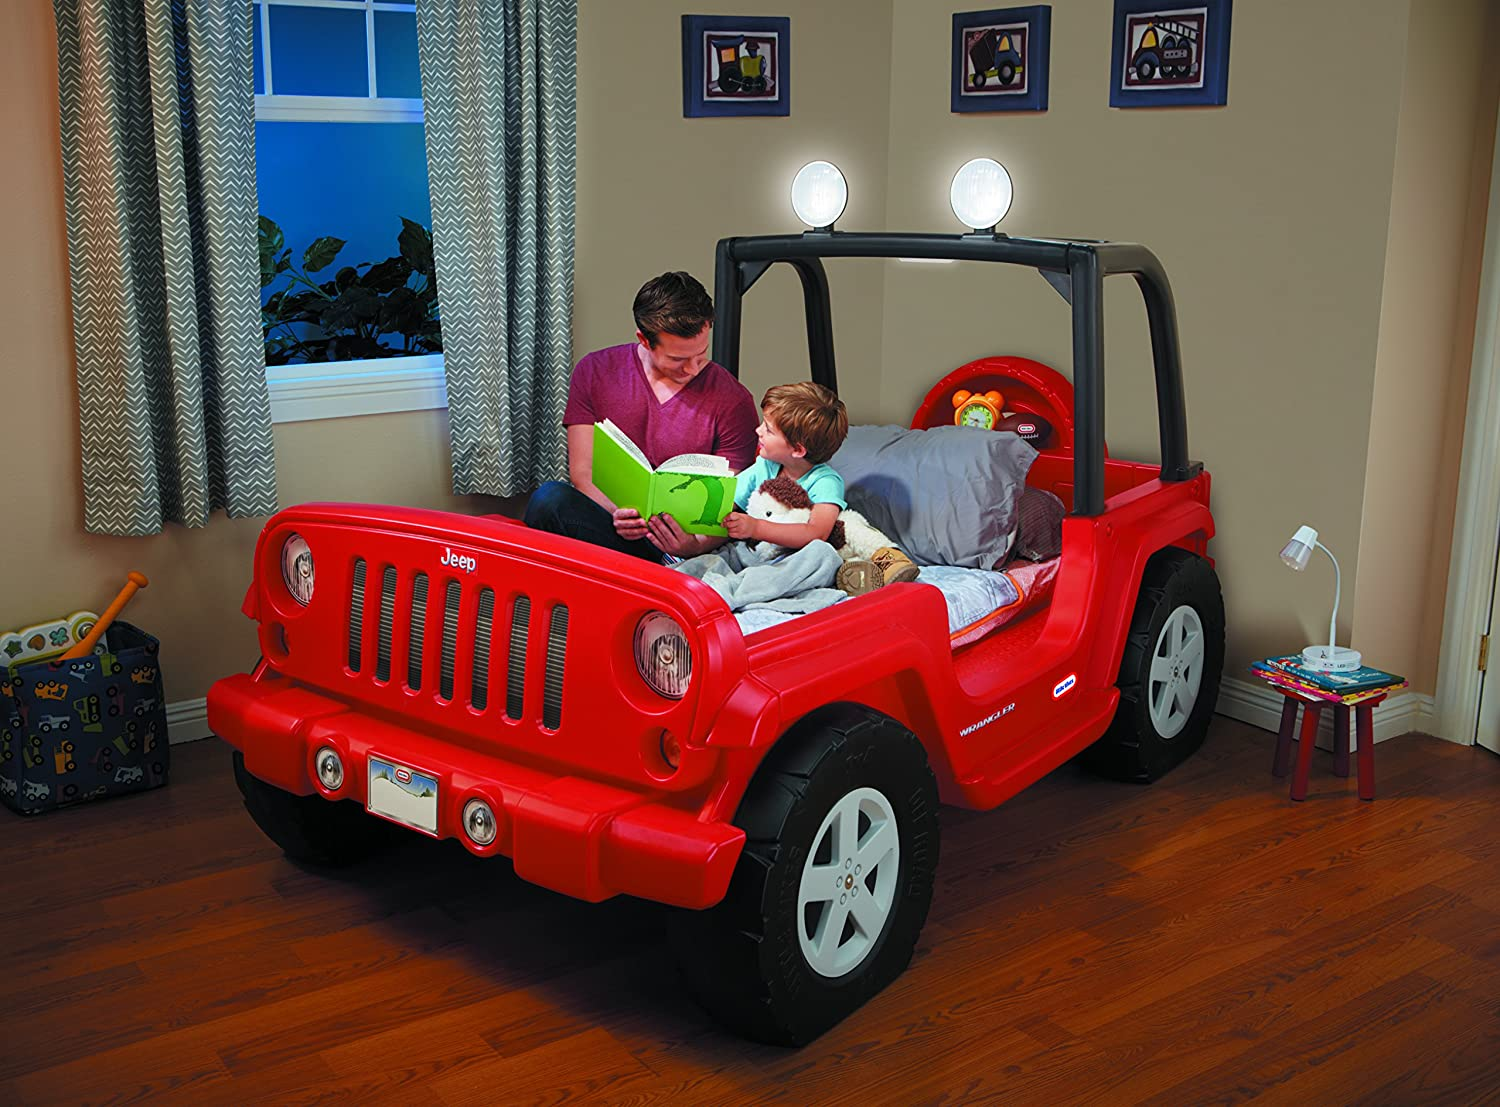 Baby jeep bed - Amazon Com Little Tikes Jeep Wrangler Toddler To Twin Bed Toys Games